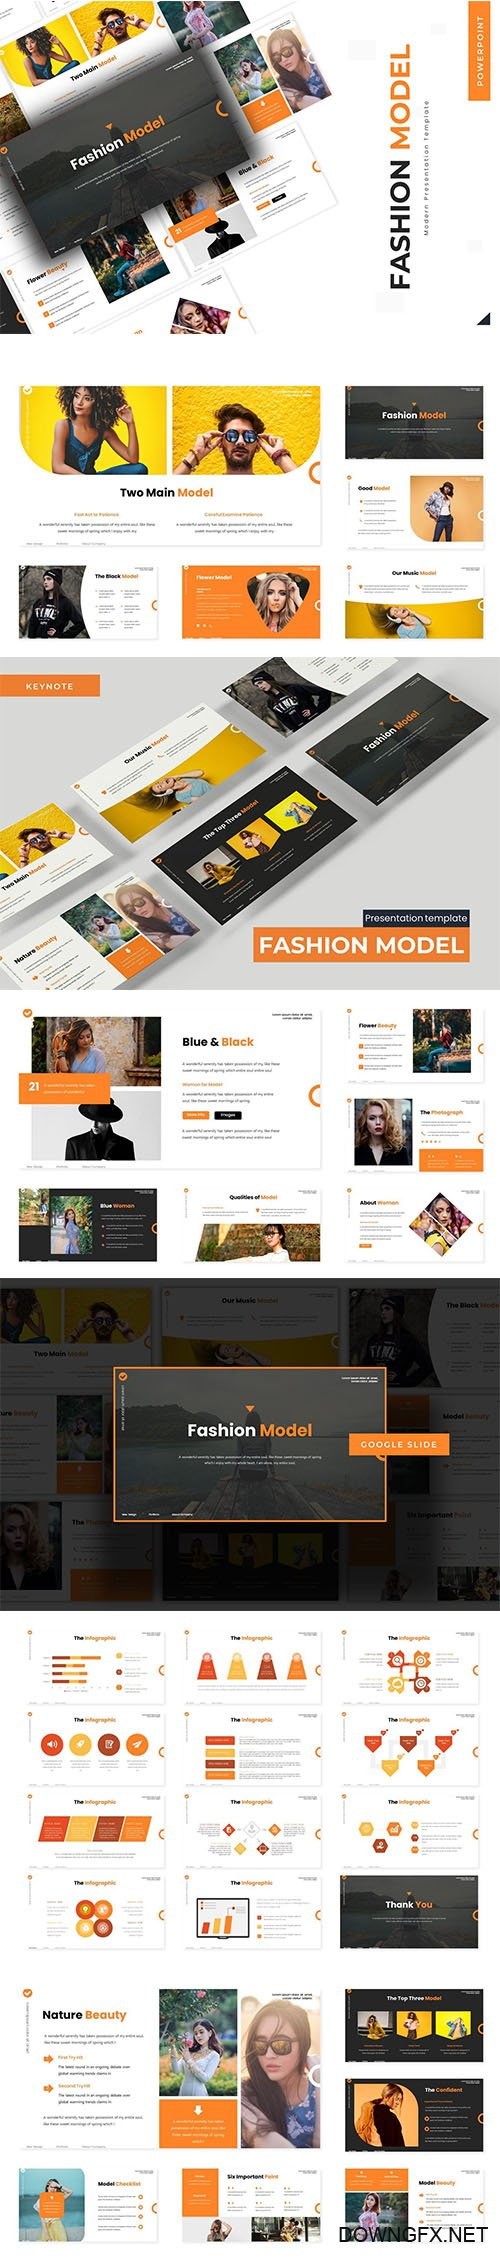 Fashion Model - Powerpoint Template, Keynote and Google Slide Template